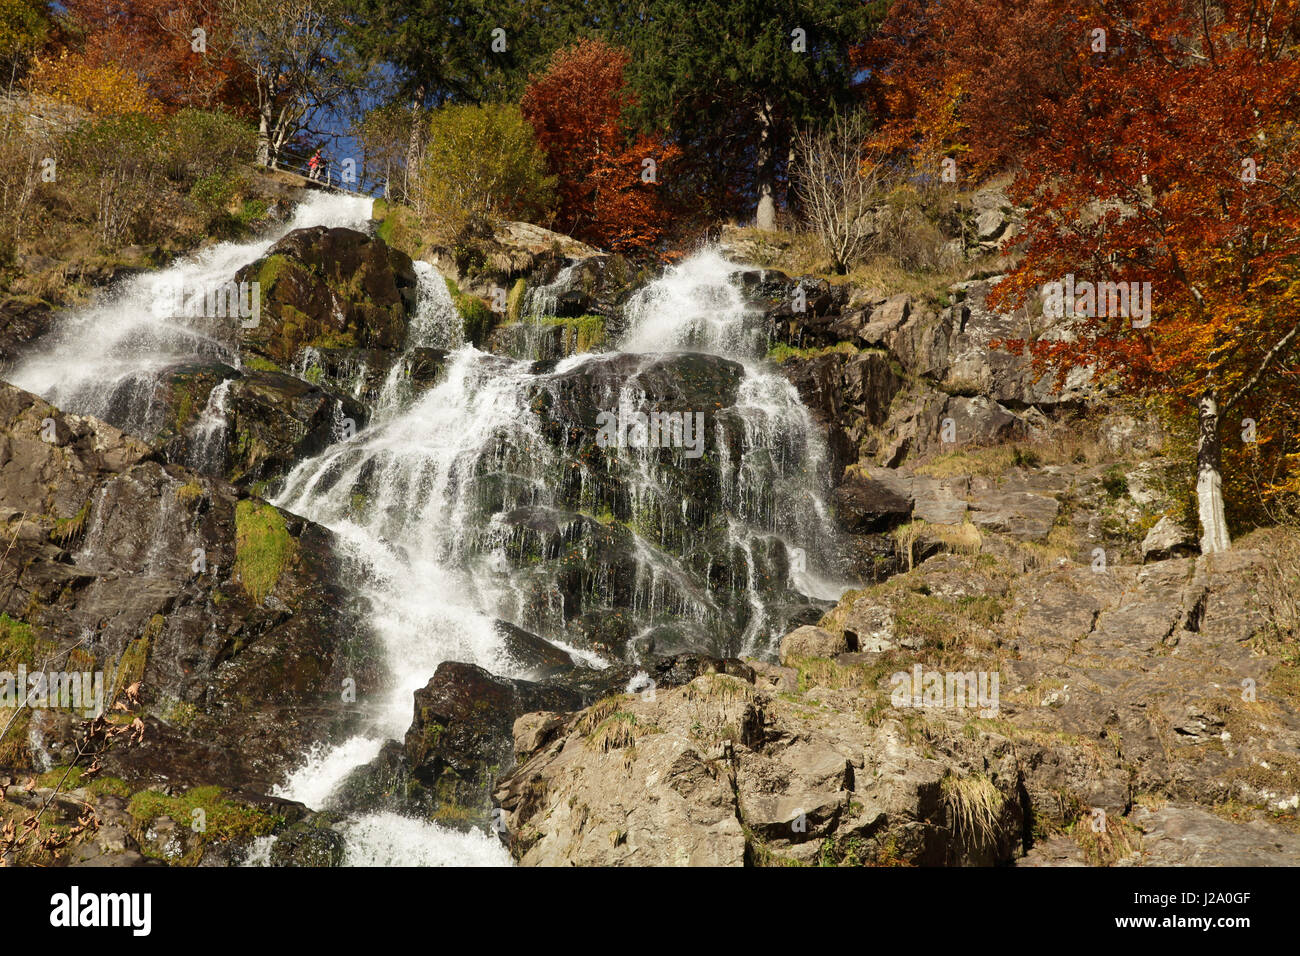 The Todtnau Waterfall in the Black Forest is the highest natural waterfall in Germany. - Stock Image